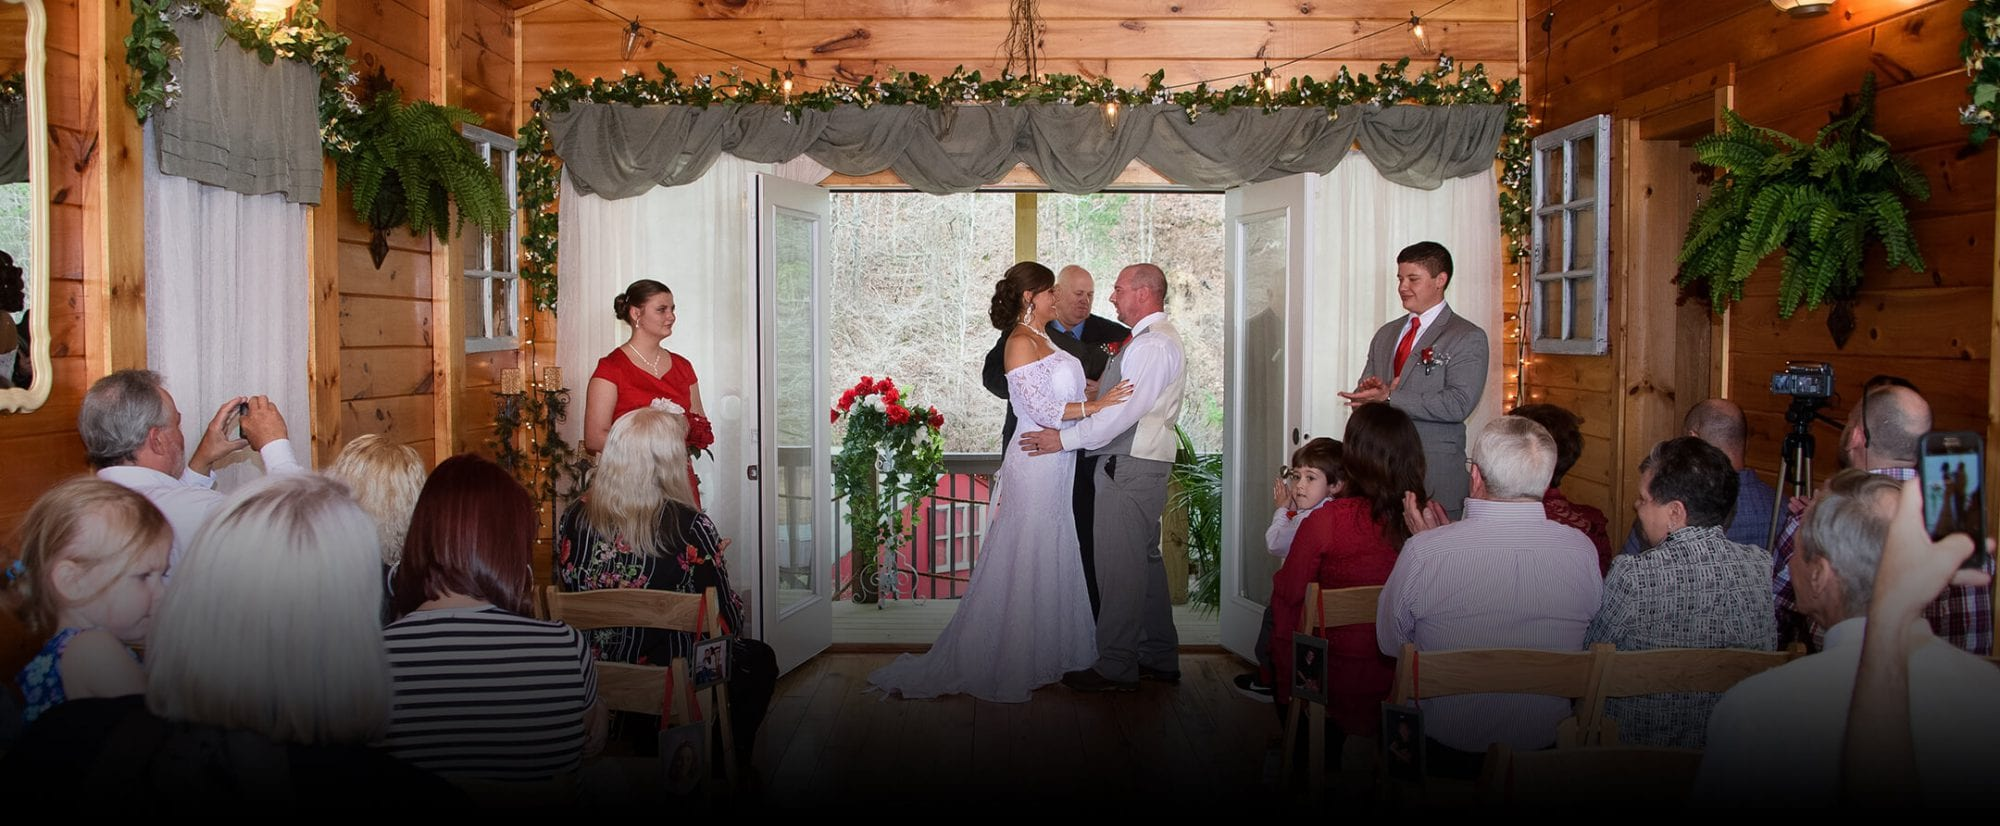 The Traditional Wedding Chapel wedding ceremony site in Pigeon Forge, TN